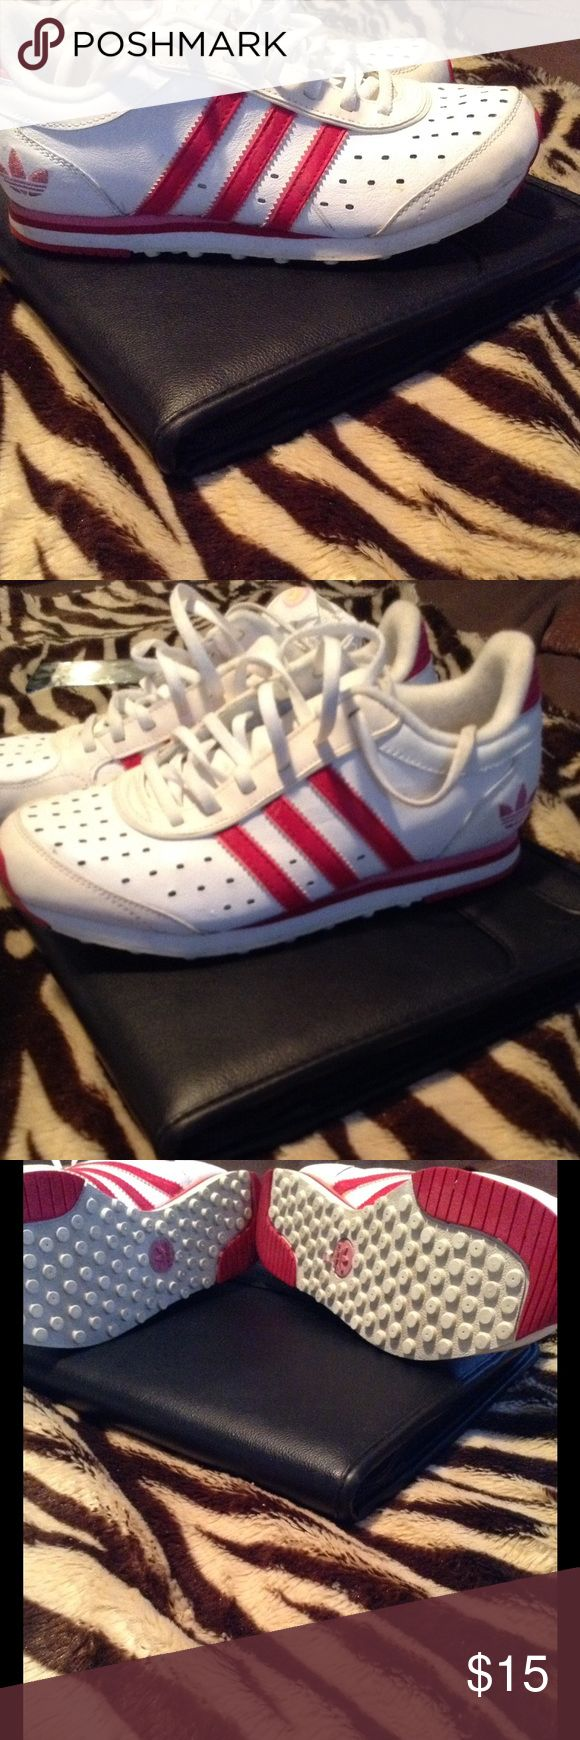 Pink and white adidas walking shoes Great for the mom who likes to walk addidas Shoes Athletic Shoes